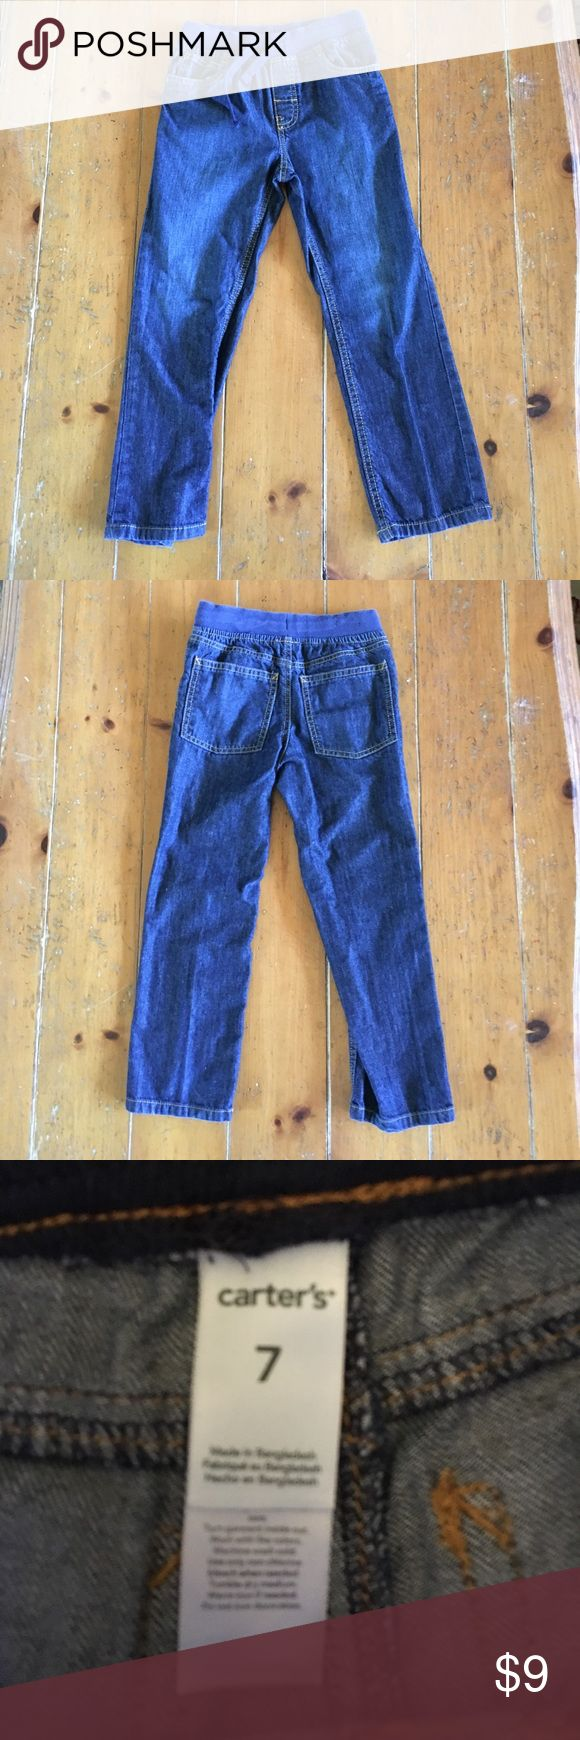 Boys 7 Carters elastic drawstring dark jeans Boys 7 Carters elastic drawstring dark jeans. Worn once. My son outgrew them before he really got to wear them. Excellent condition. All of my items are from a smoke free home. I consider reasonable offers and offer a discount on bundles. No trades. Carter's Bottoms Jeans